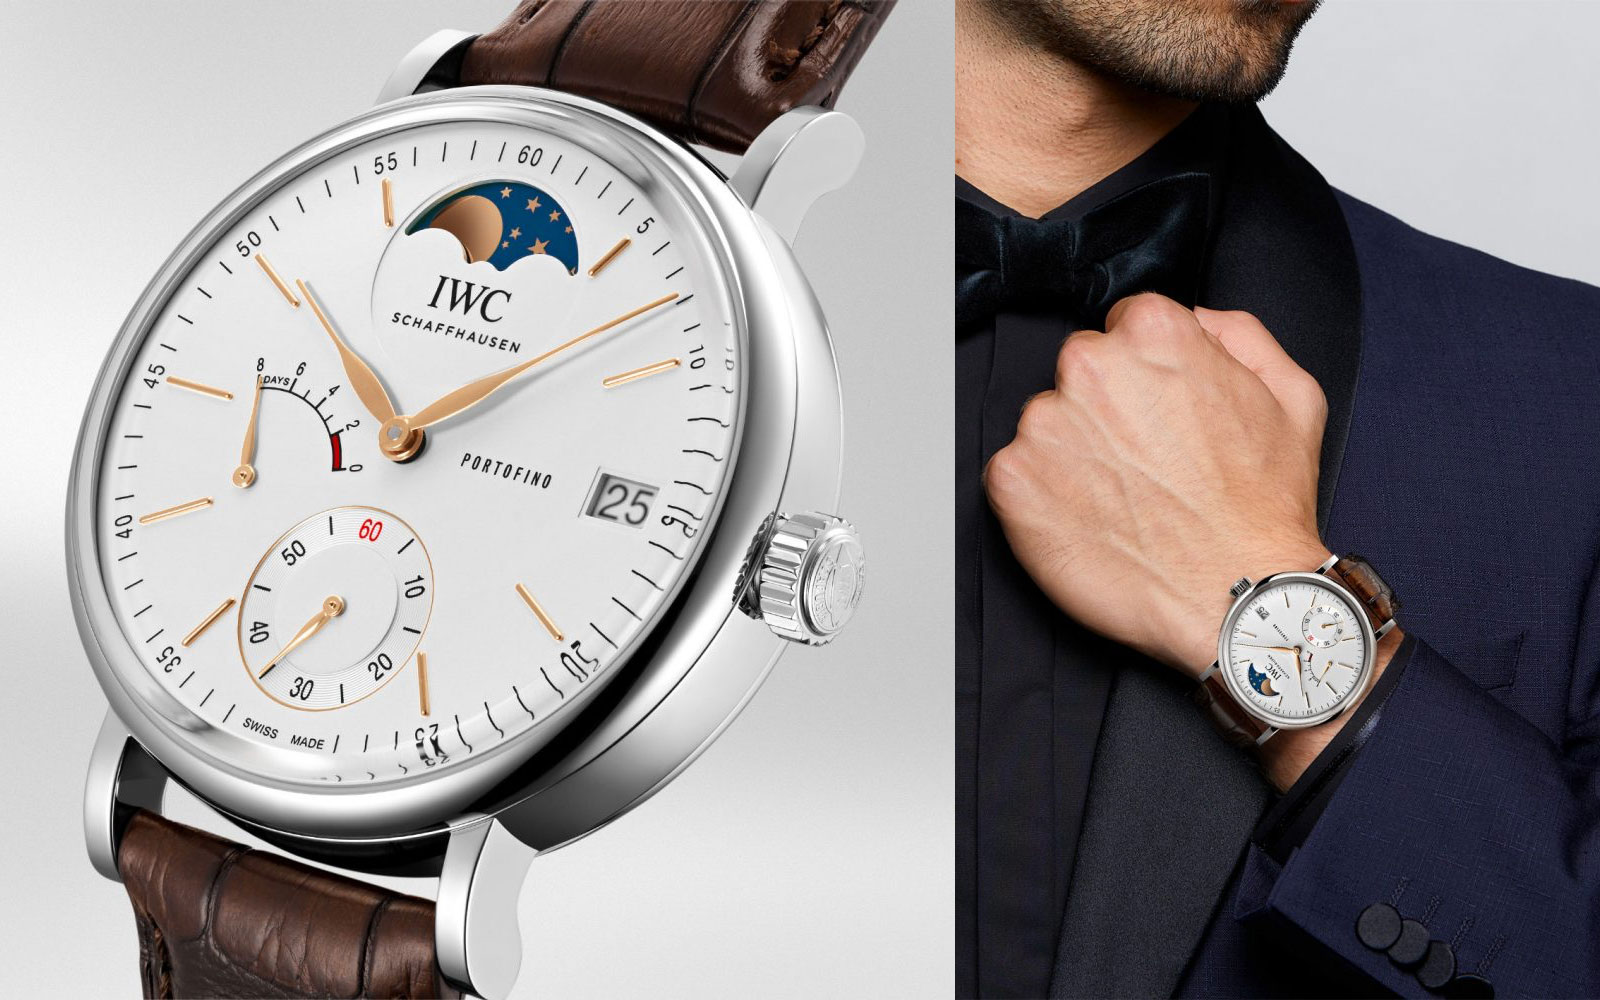 PORTOFINO HAND-WOUND MOON PHASE IW516401 - feature